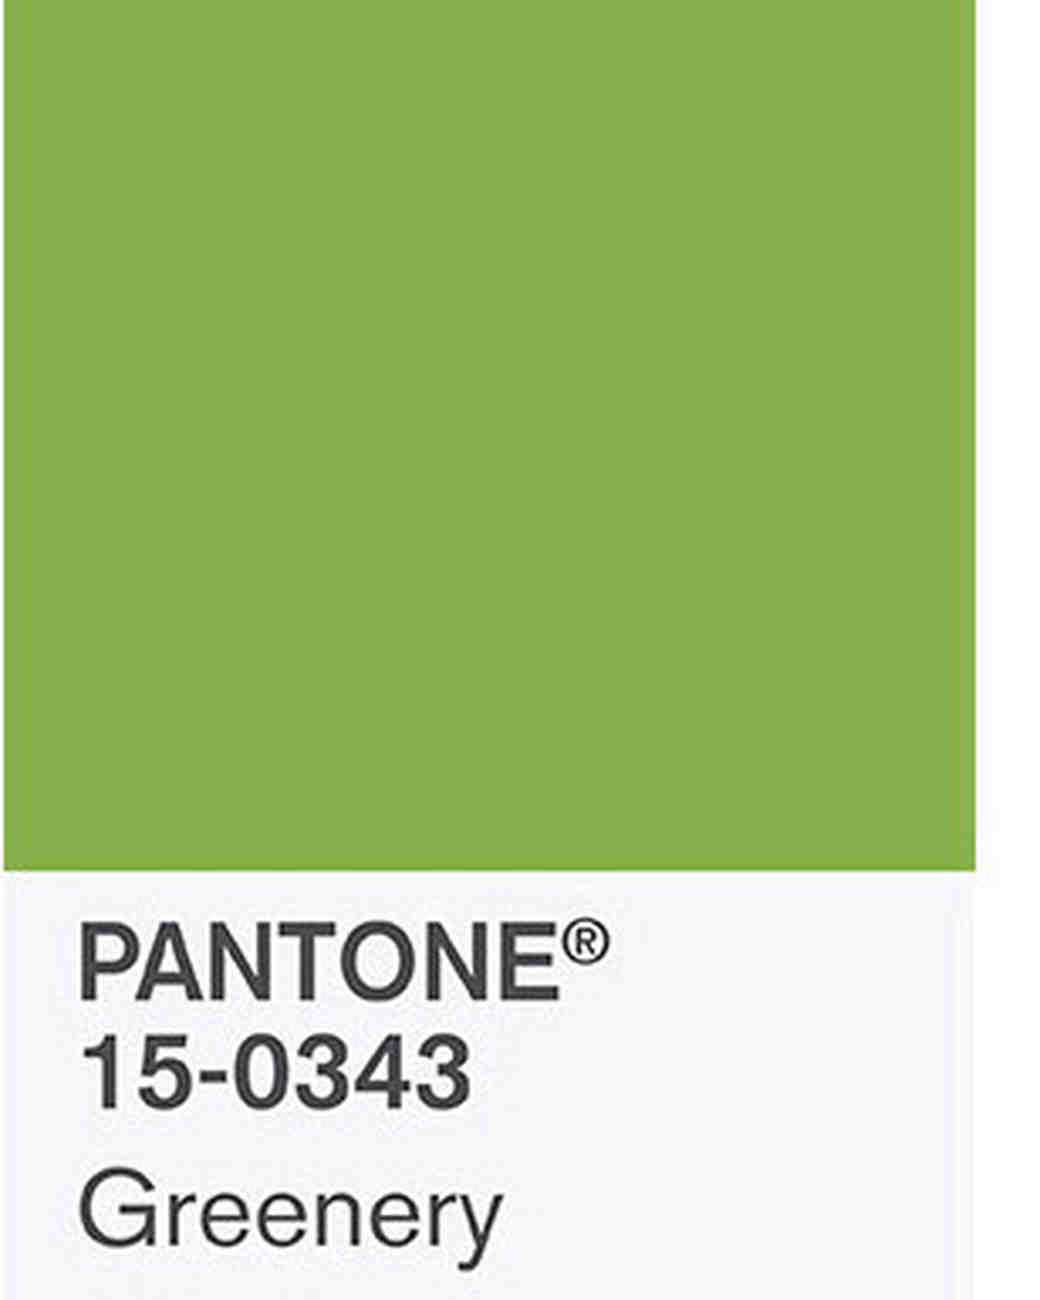 Pantone Greenery Wedding Color Ideas Inspired By The 2017 Pantone Shade